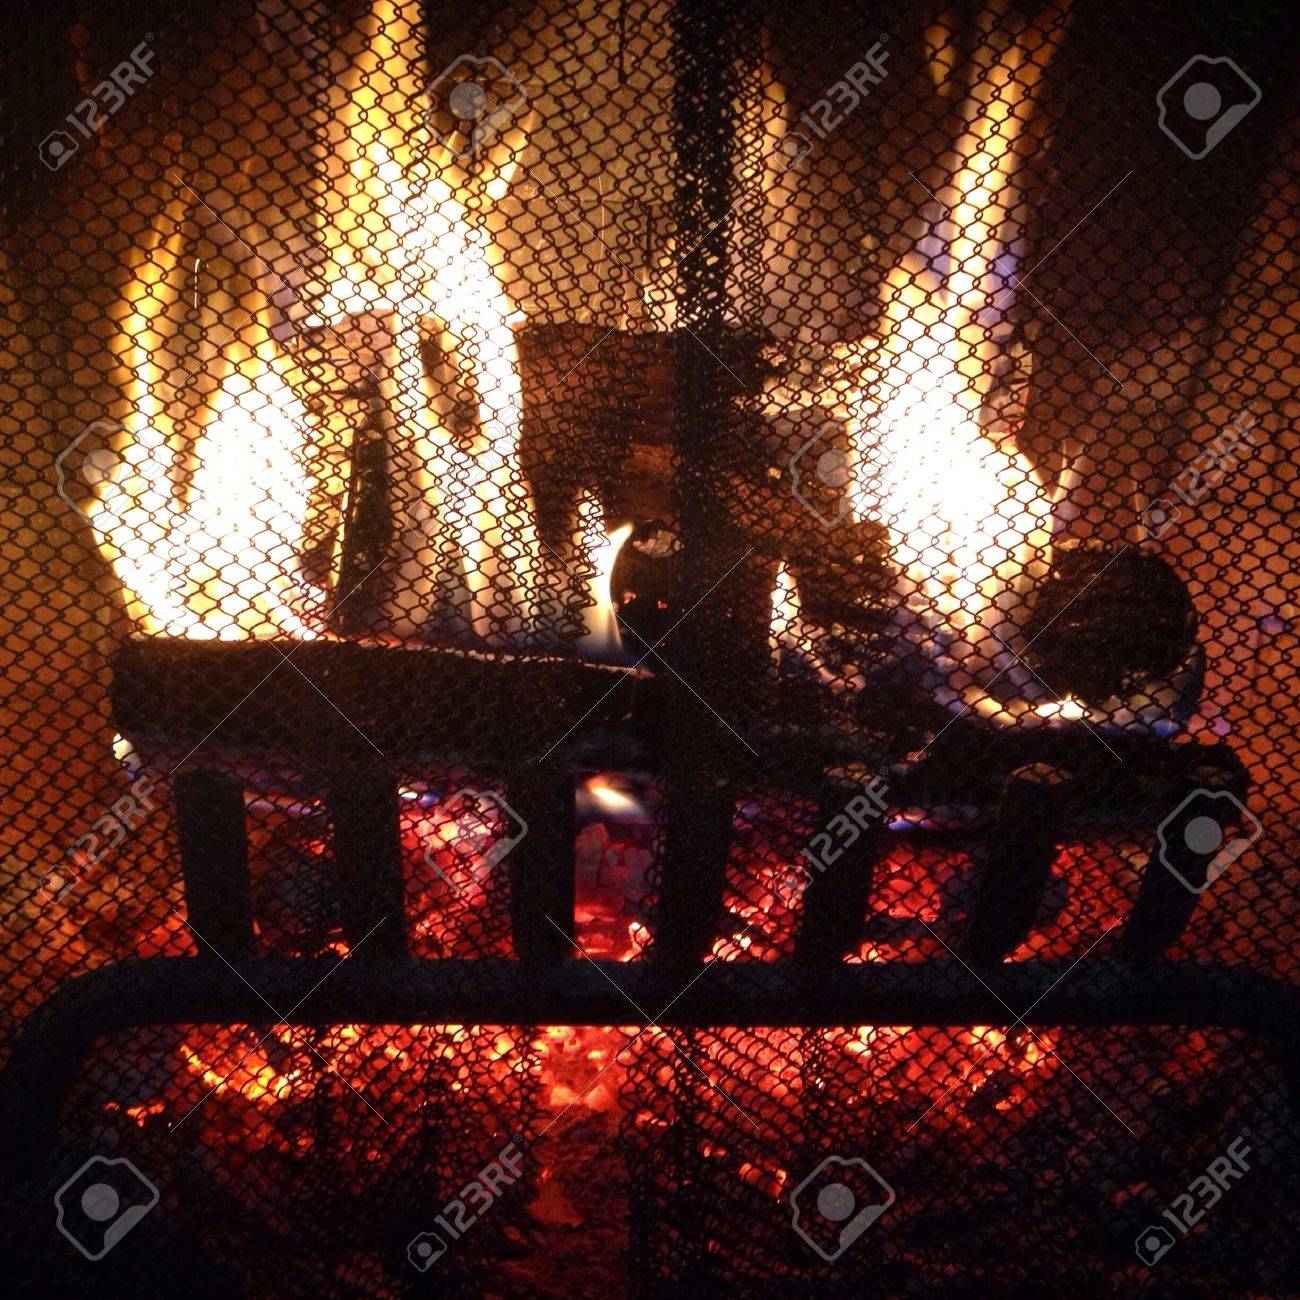 Burning logs in a fireplace Stock Photo - 34068094